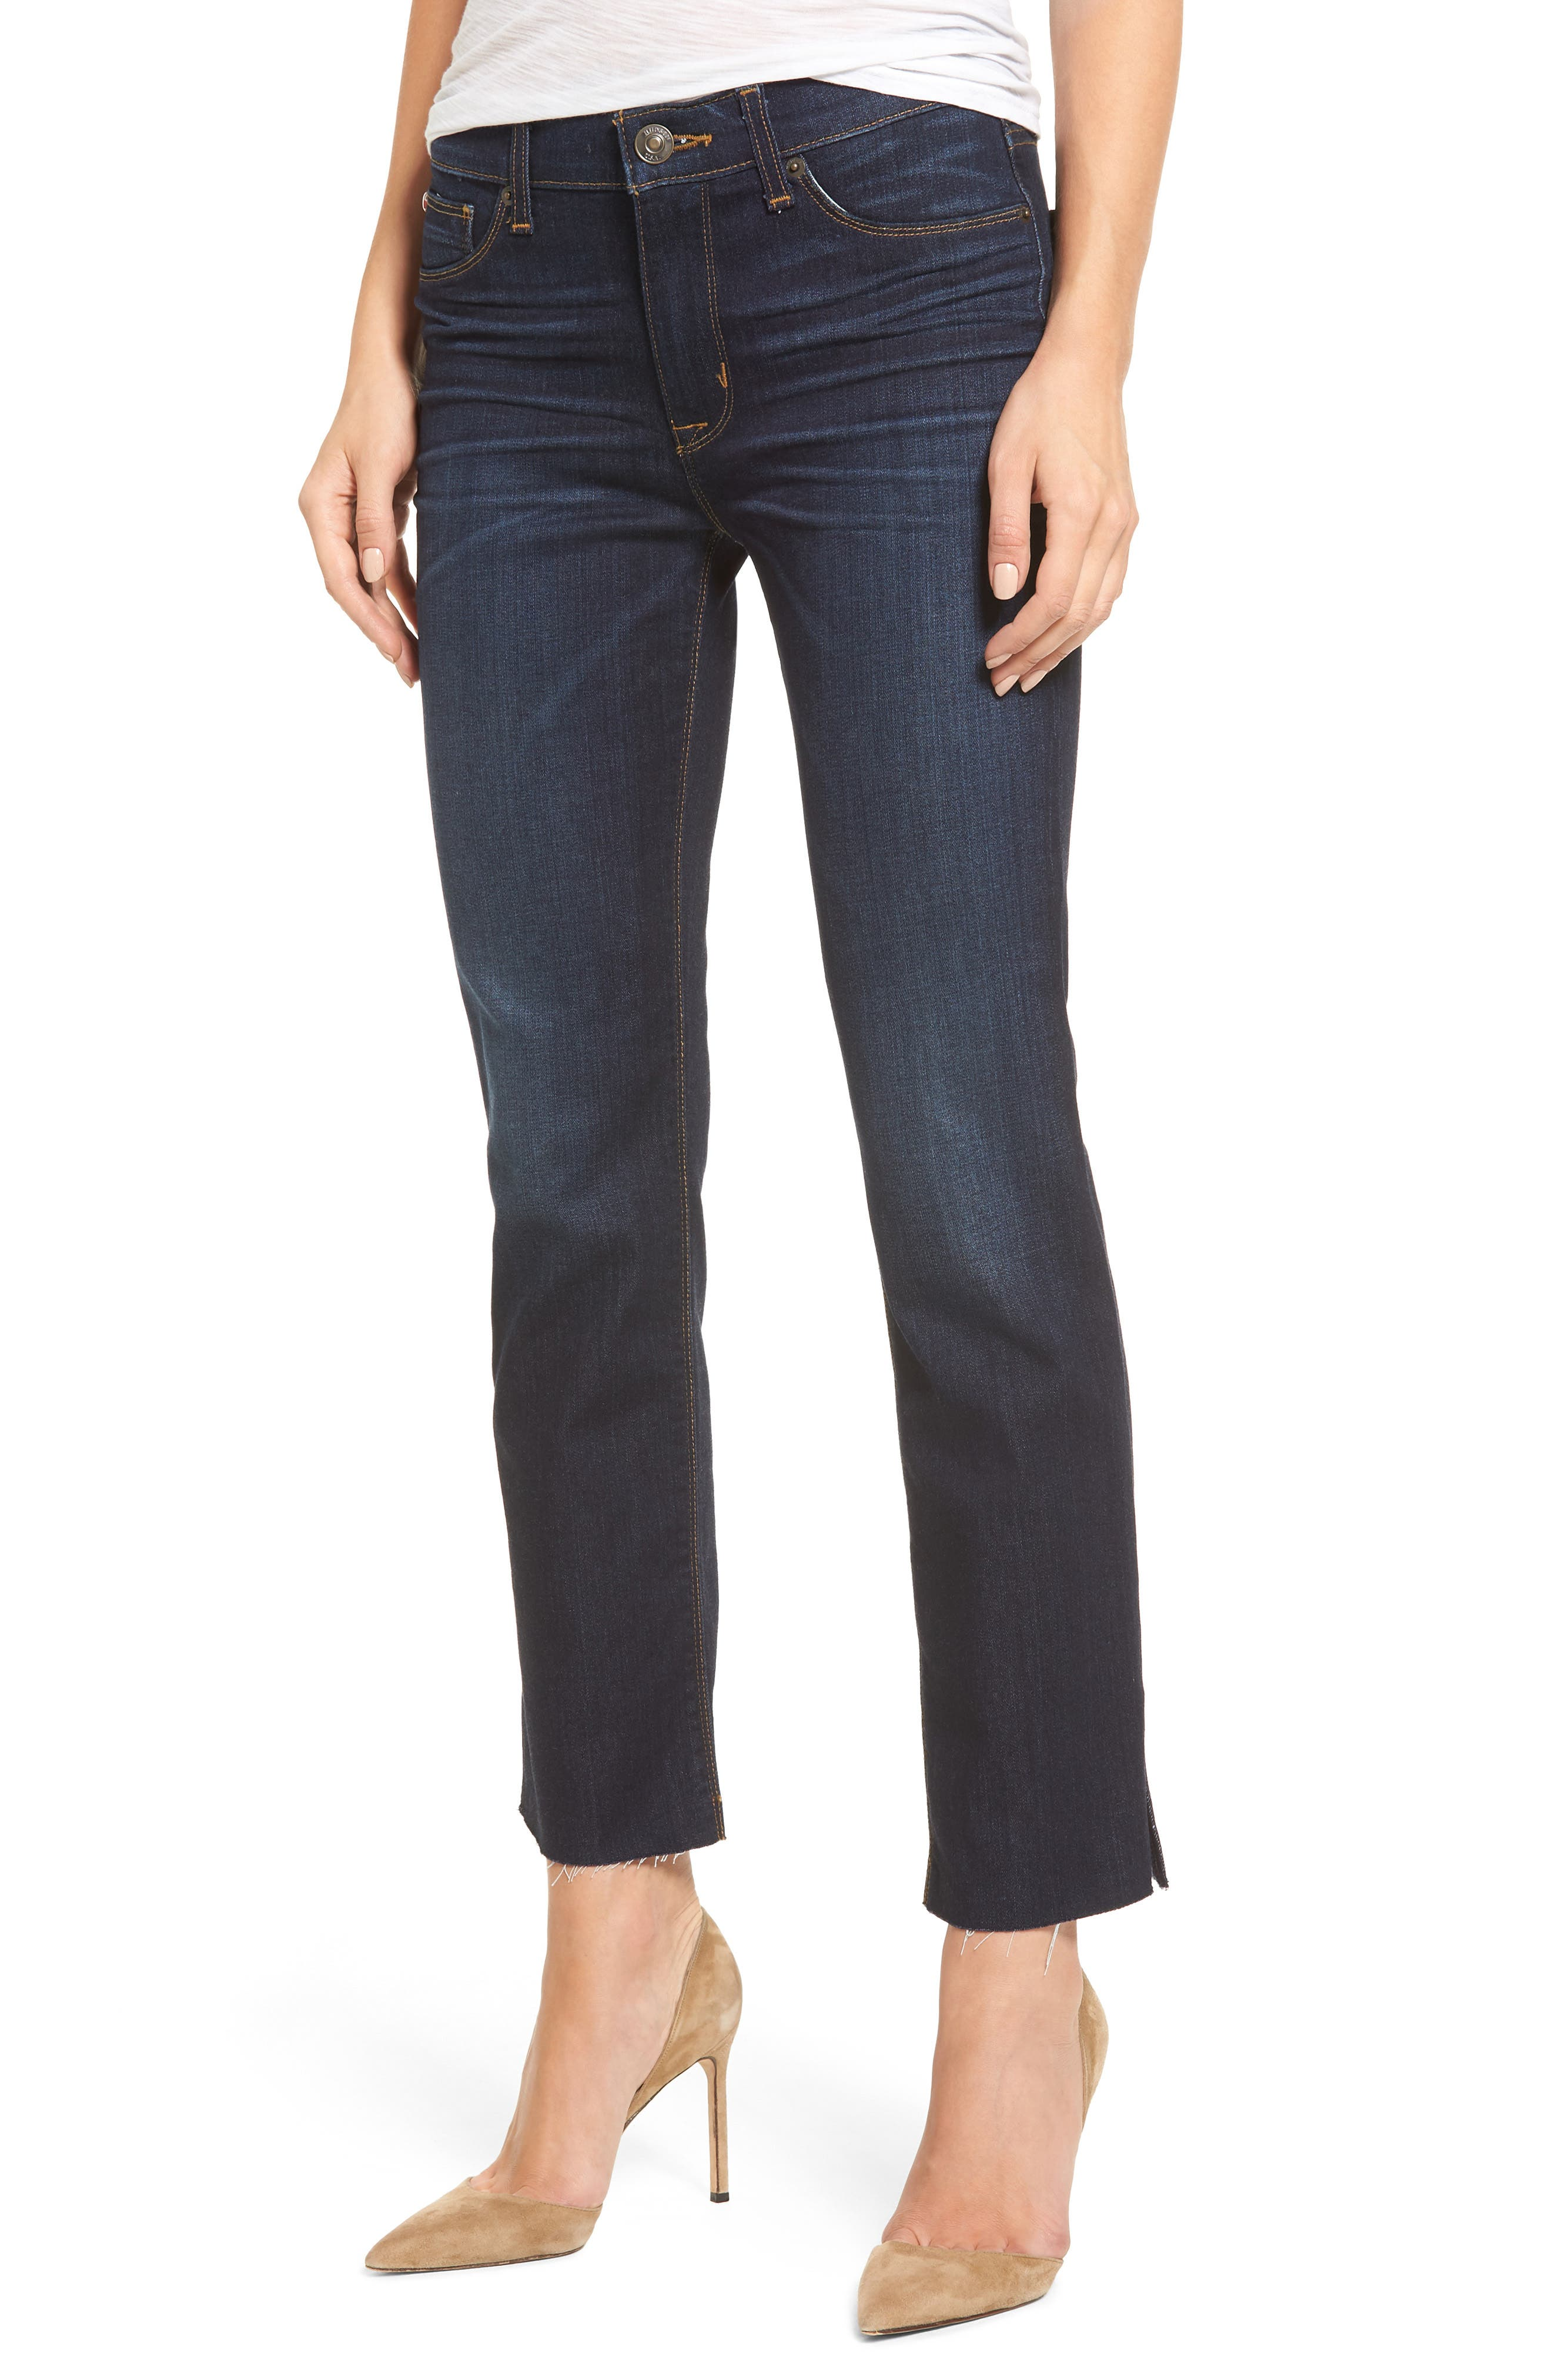 Alternate Image 1 Selected - Hudson Jeans Tilda Slit Ankle Skinny Jeans (Electrify)